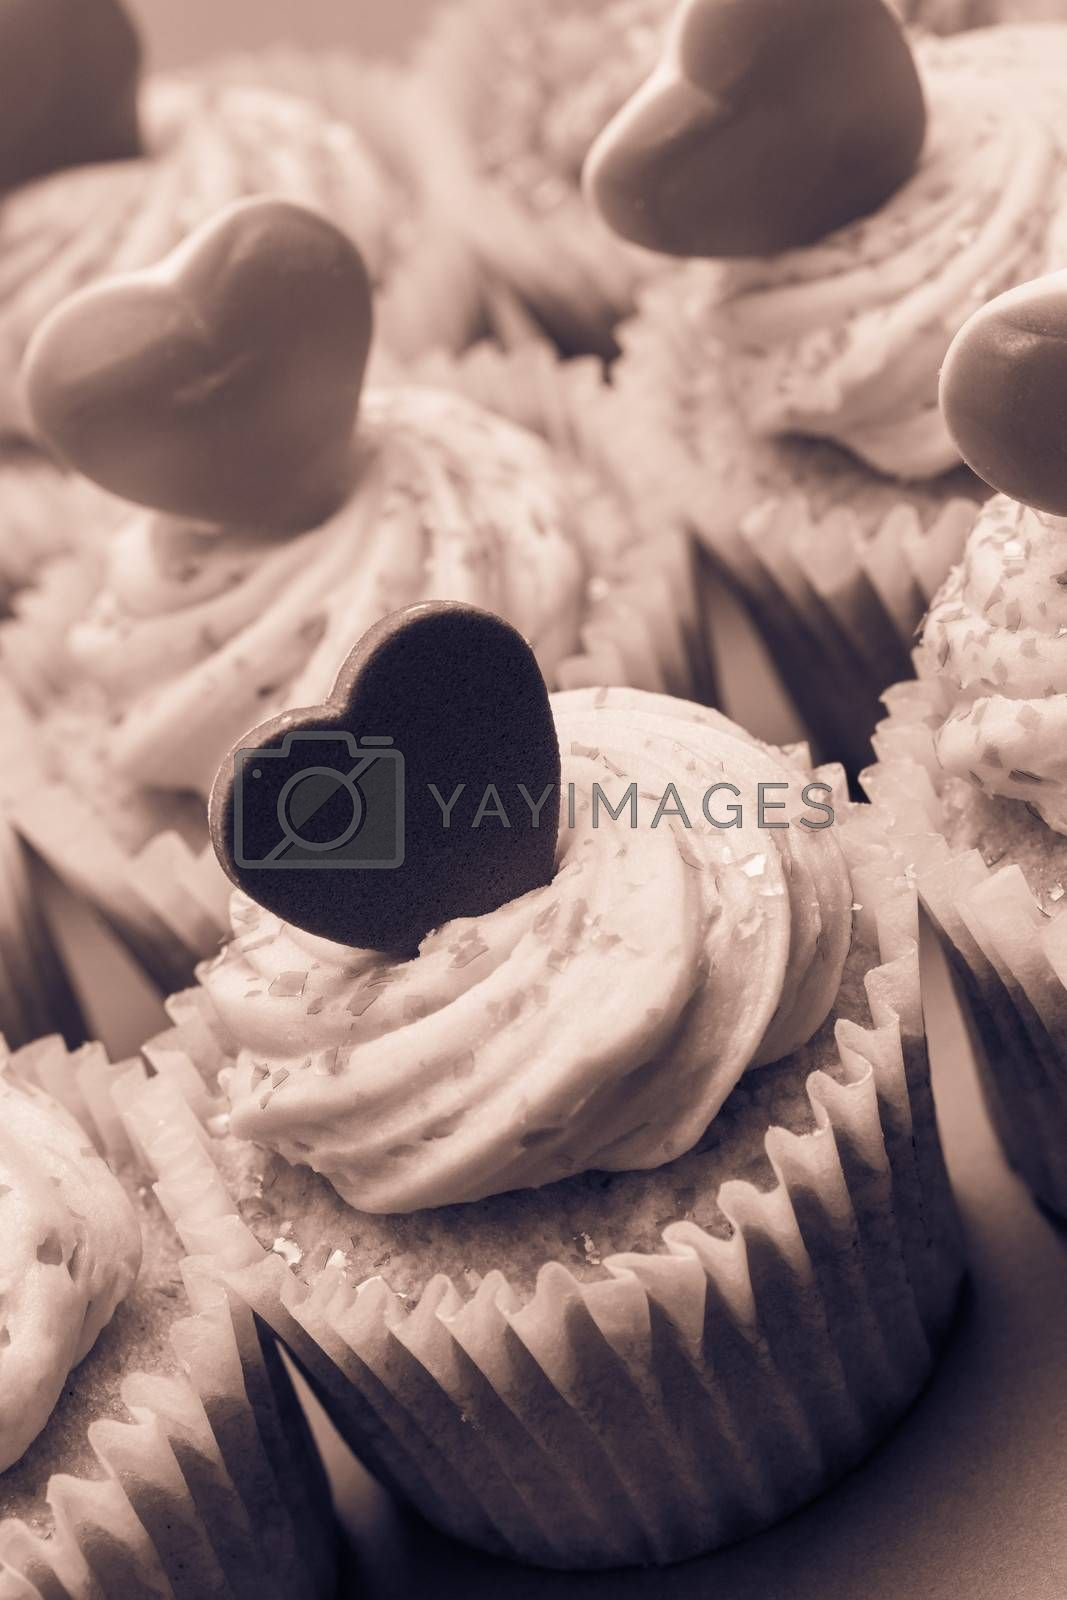 Close up of valentines cupcakes in sepia tint